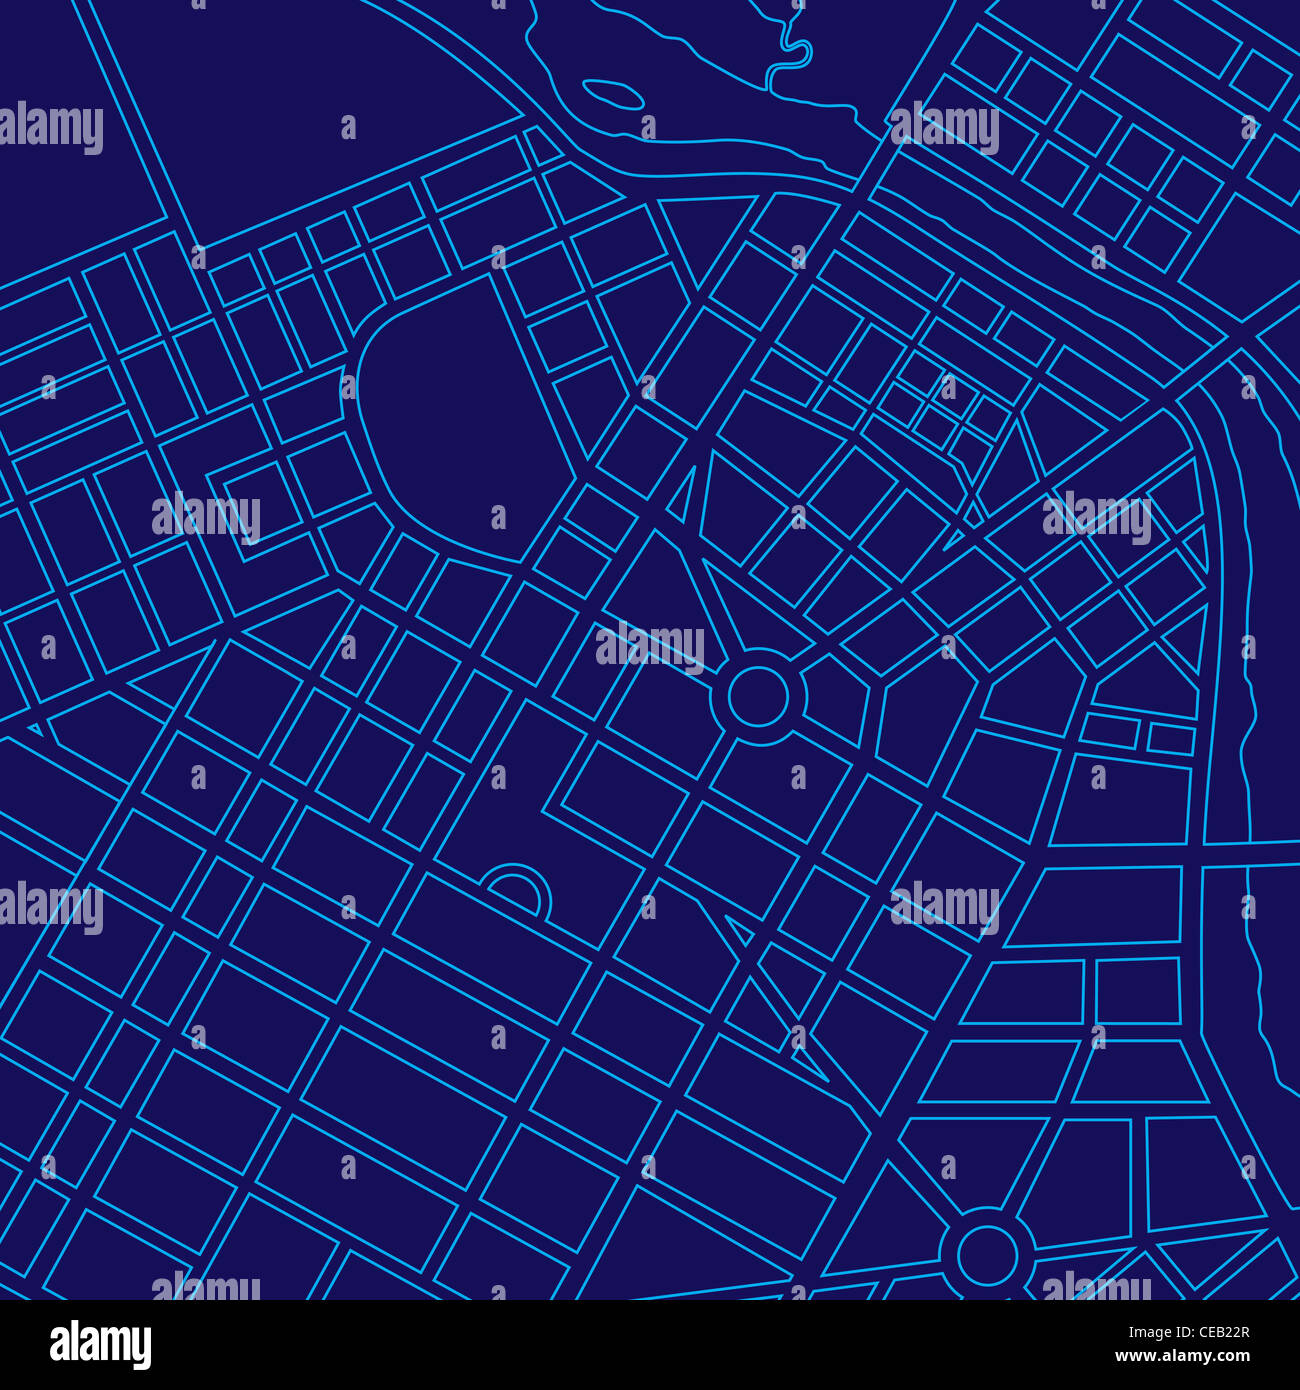 how to make a digital map